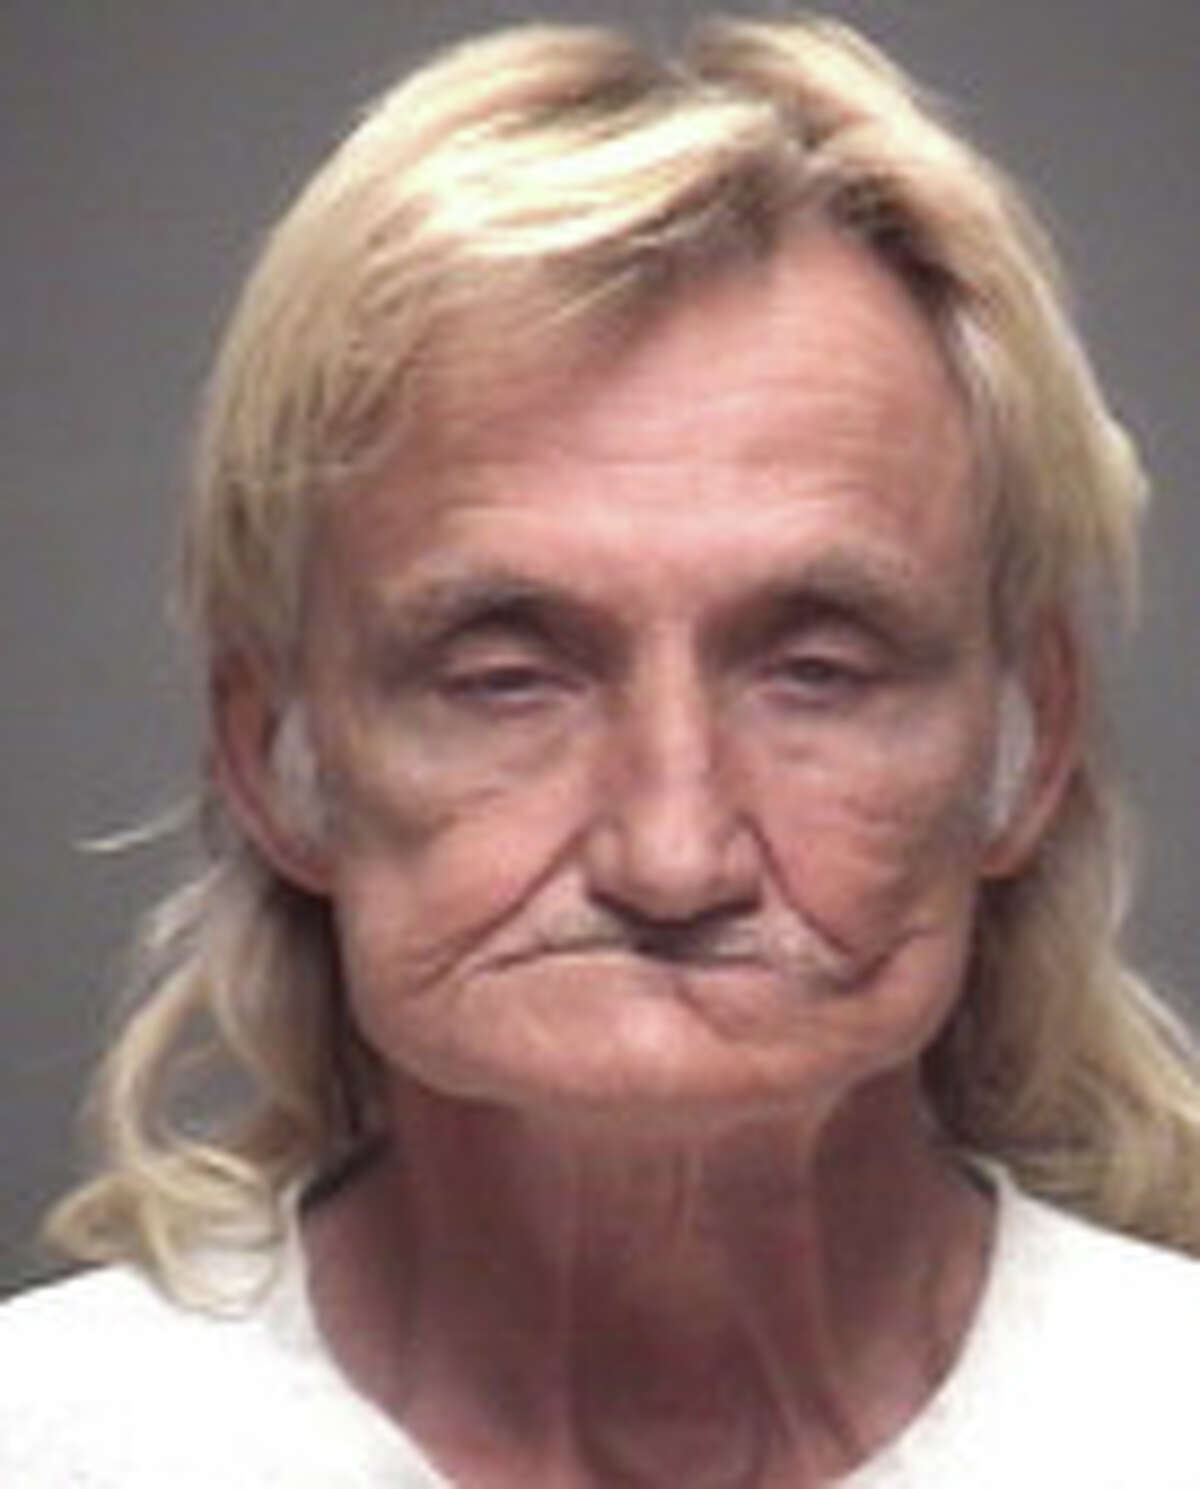 Clyde Edwin Hedrick, 59, of San Leon, has been charged with murder in the 1984 death of Ellen Rae Beason.